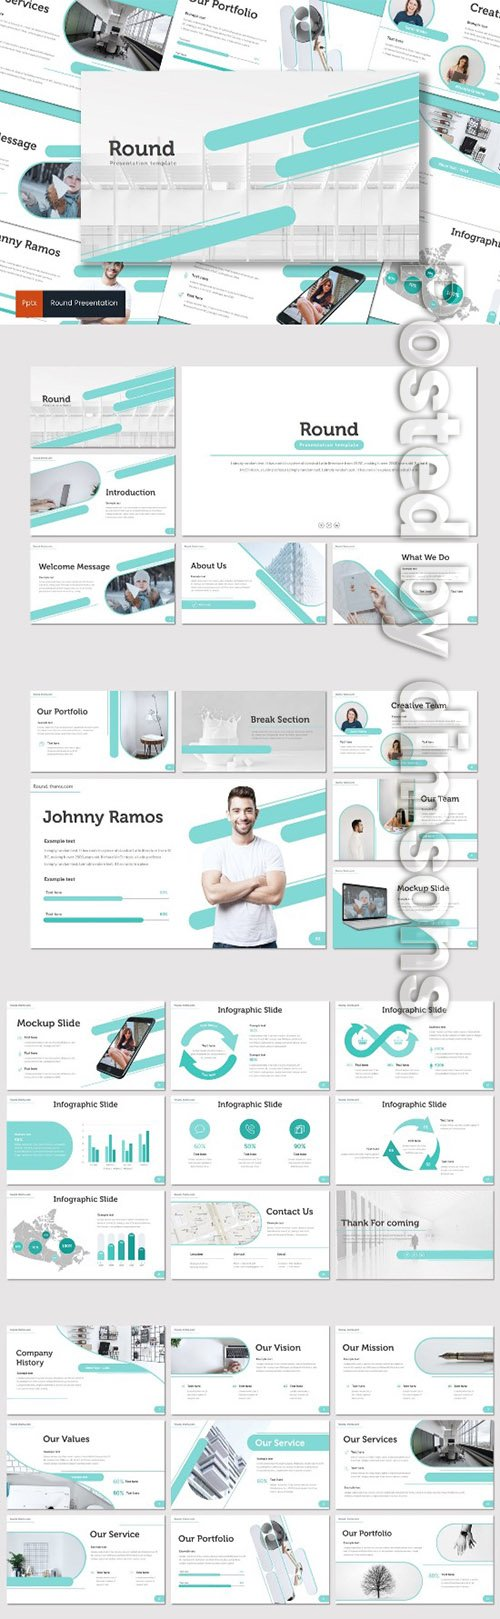 Round - PowerPoint, Keynote and Google Slides Templates